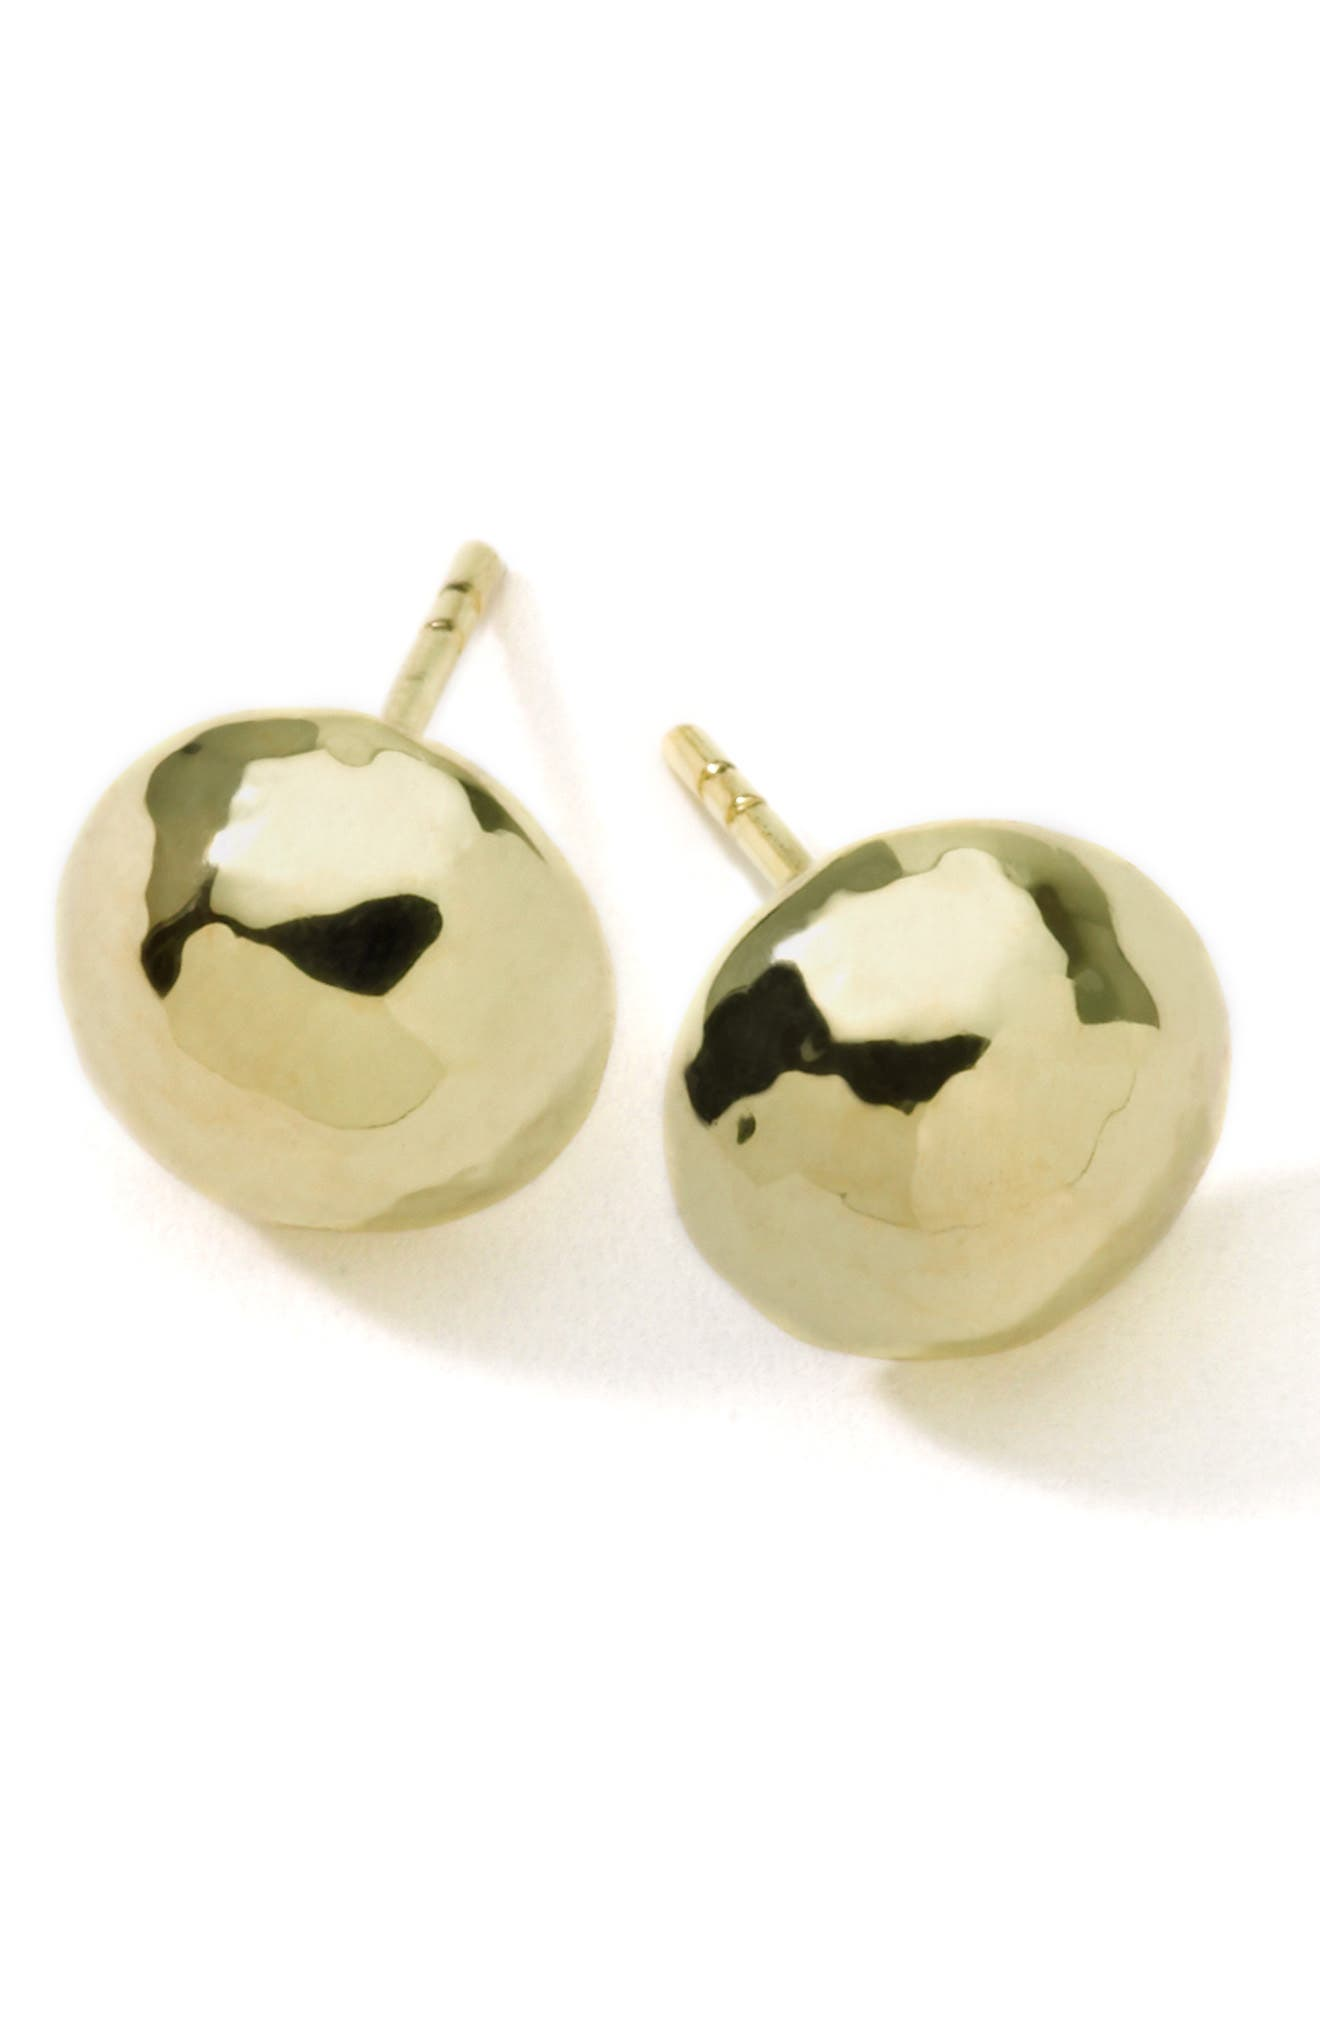 'Glamazon' 18k Gold Hammered Ball Earrings,                             Alternate thumbnail 2, color,                             YELLOW GOLD